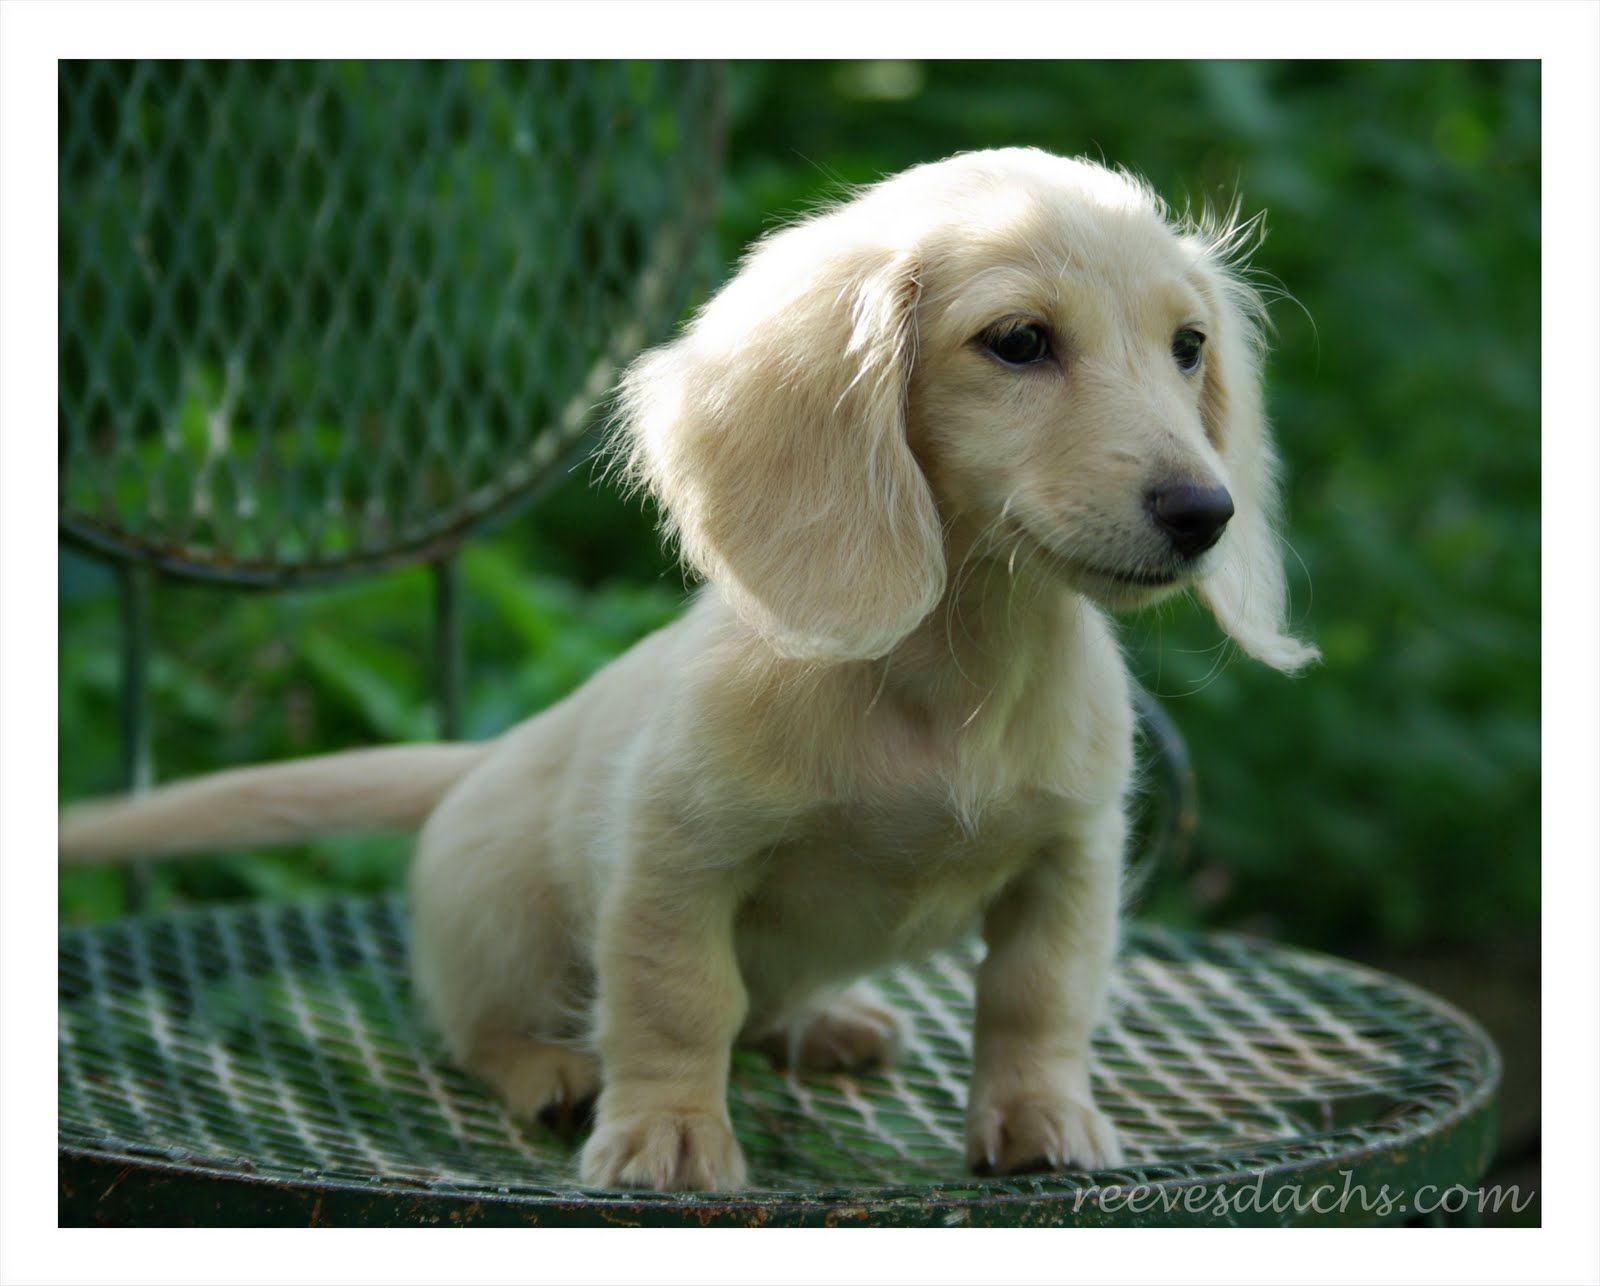 Breeder Of True To Size Miniature Dachshund Puppies Diamond Doxies Specializes In Smooth And Long Dachshund Puppy Miniature Dachshund Breed Dachshund Puppies